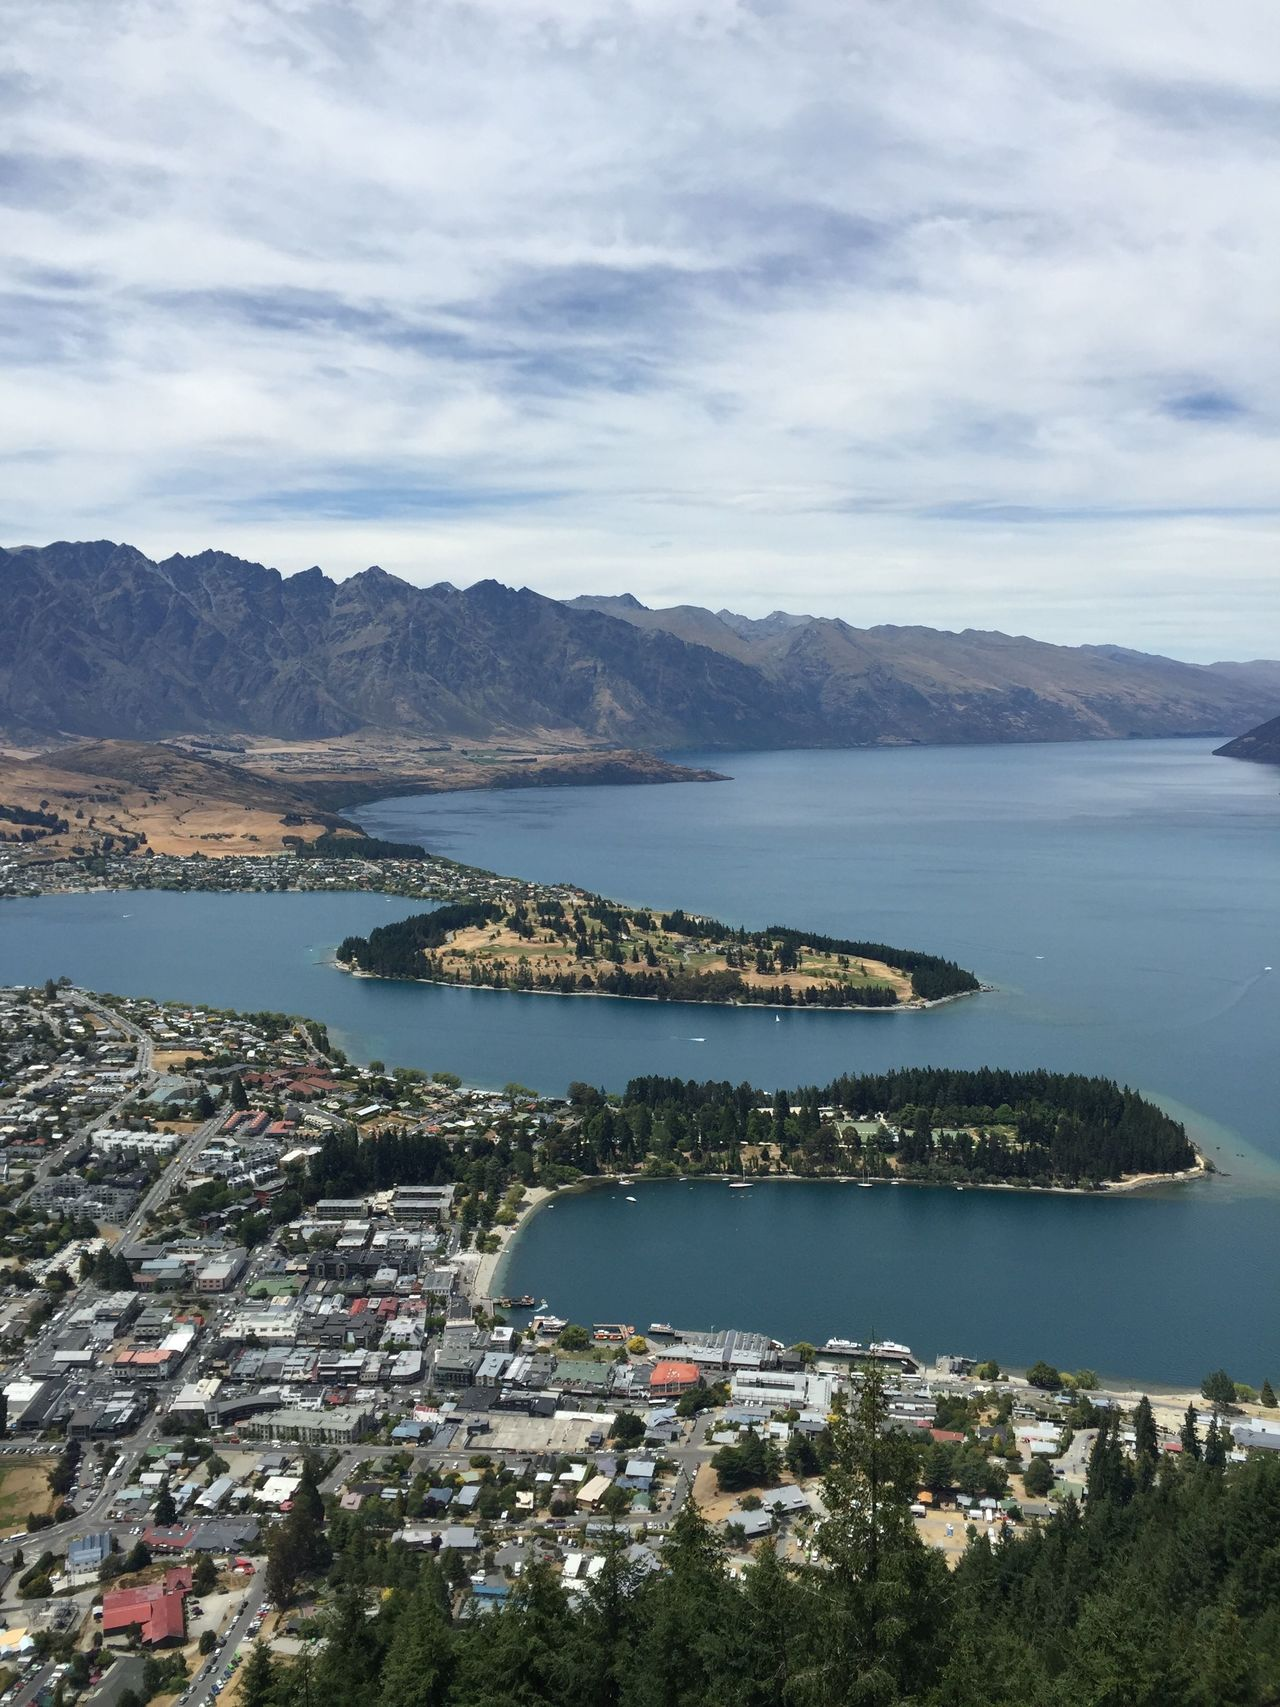 Blue Boat Boats Lake Lake Wakatipu Lakeshore Landscape Mountain Mountain Range Mountain View Mountains Nature Outdoors Outside Overlook Rock Rocks Scenic Sea The Remarkables Town Tranquil Trees Water Waterfront